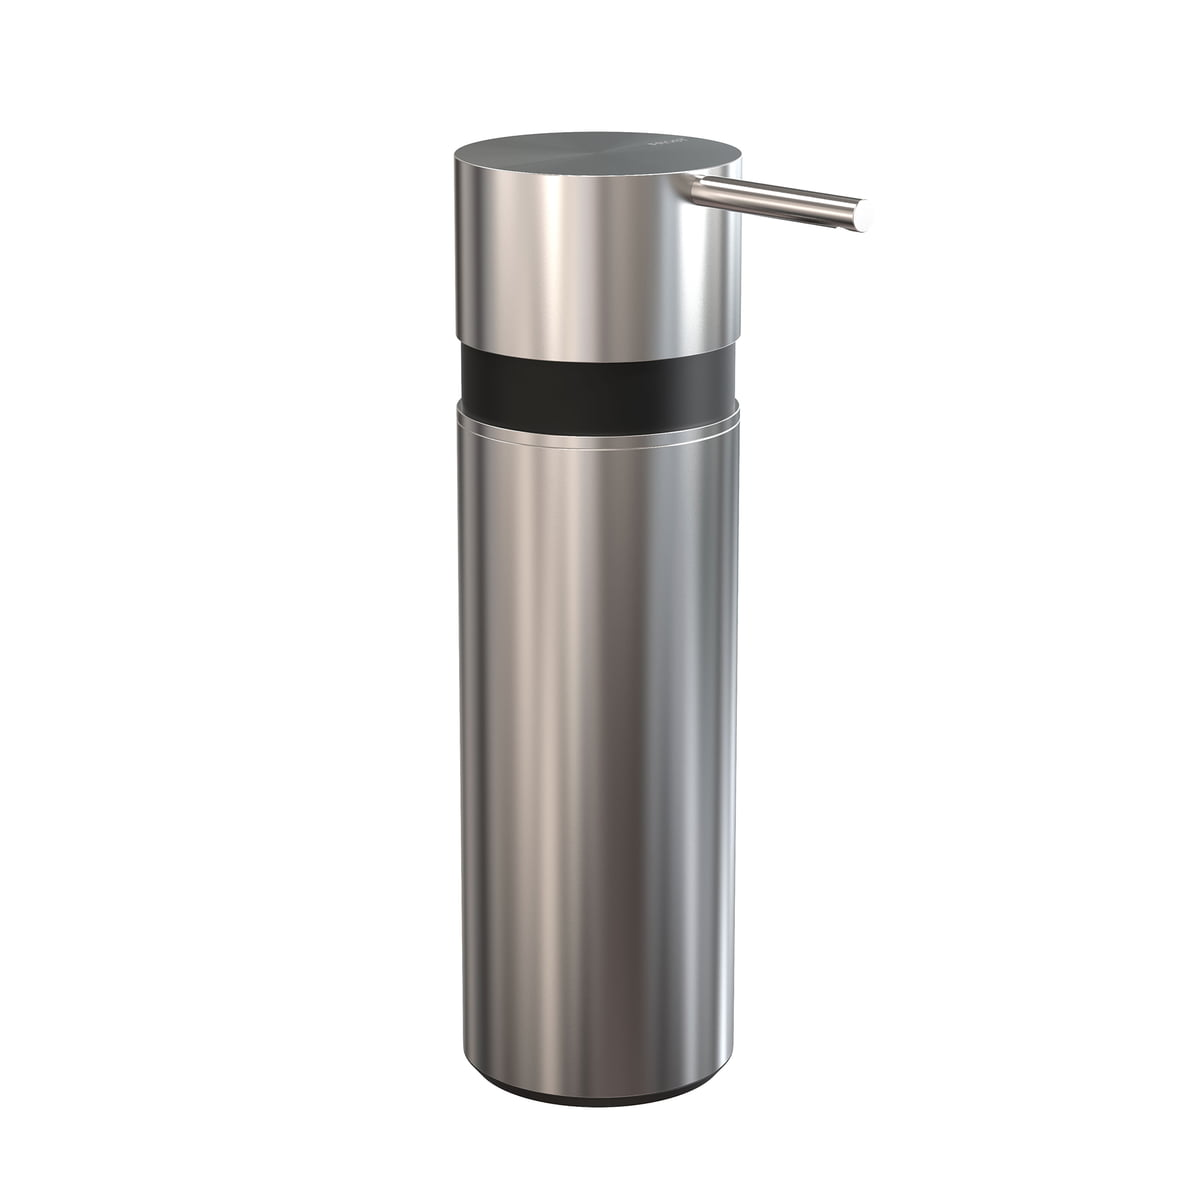 Soap Dispenser By Frost Connox